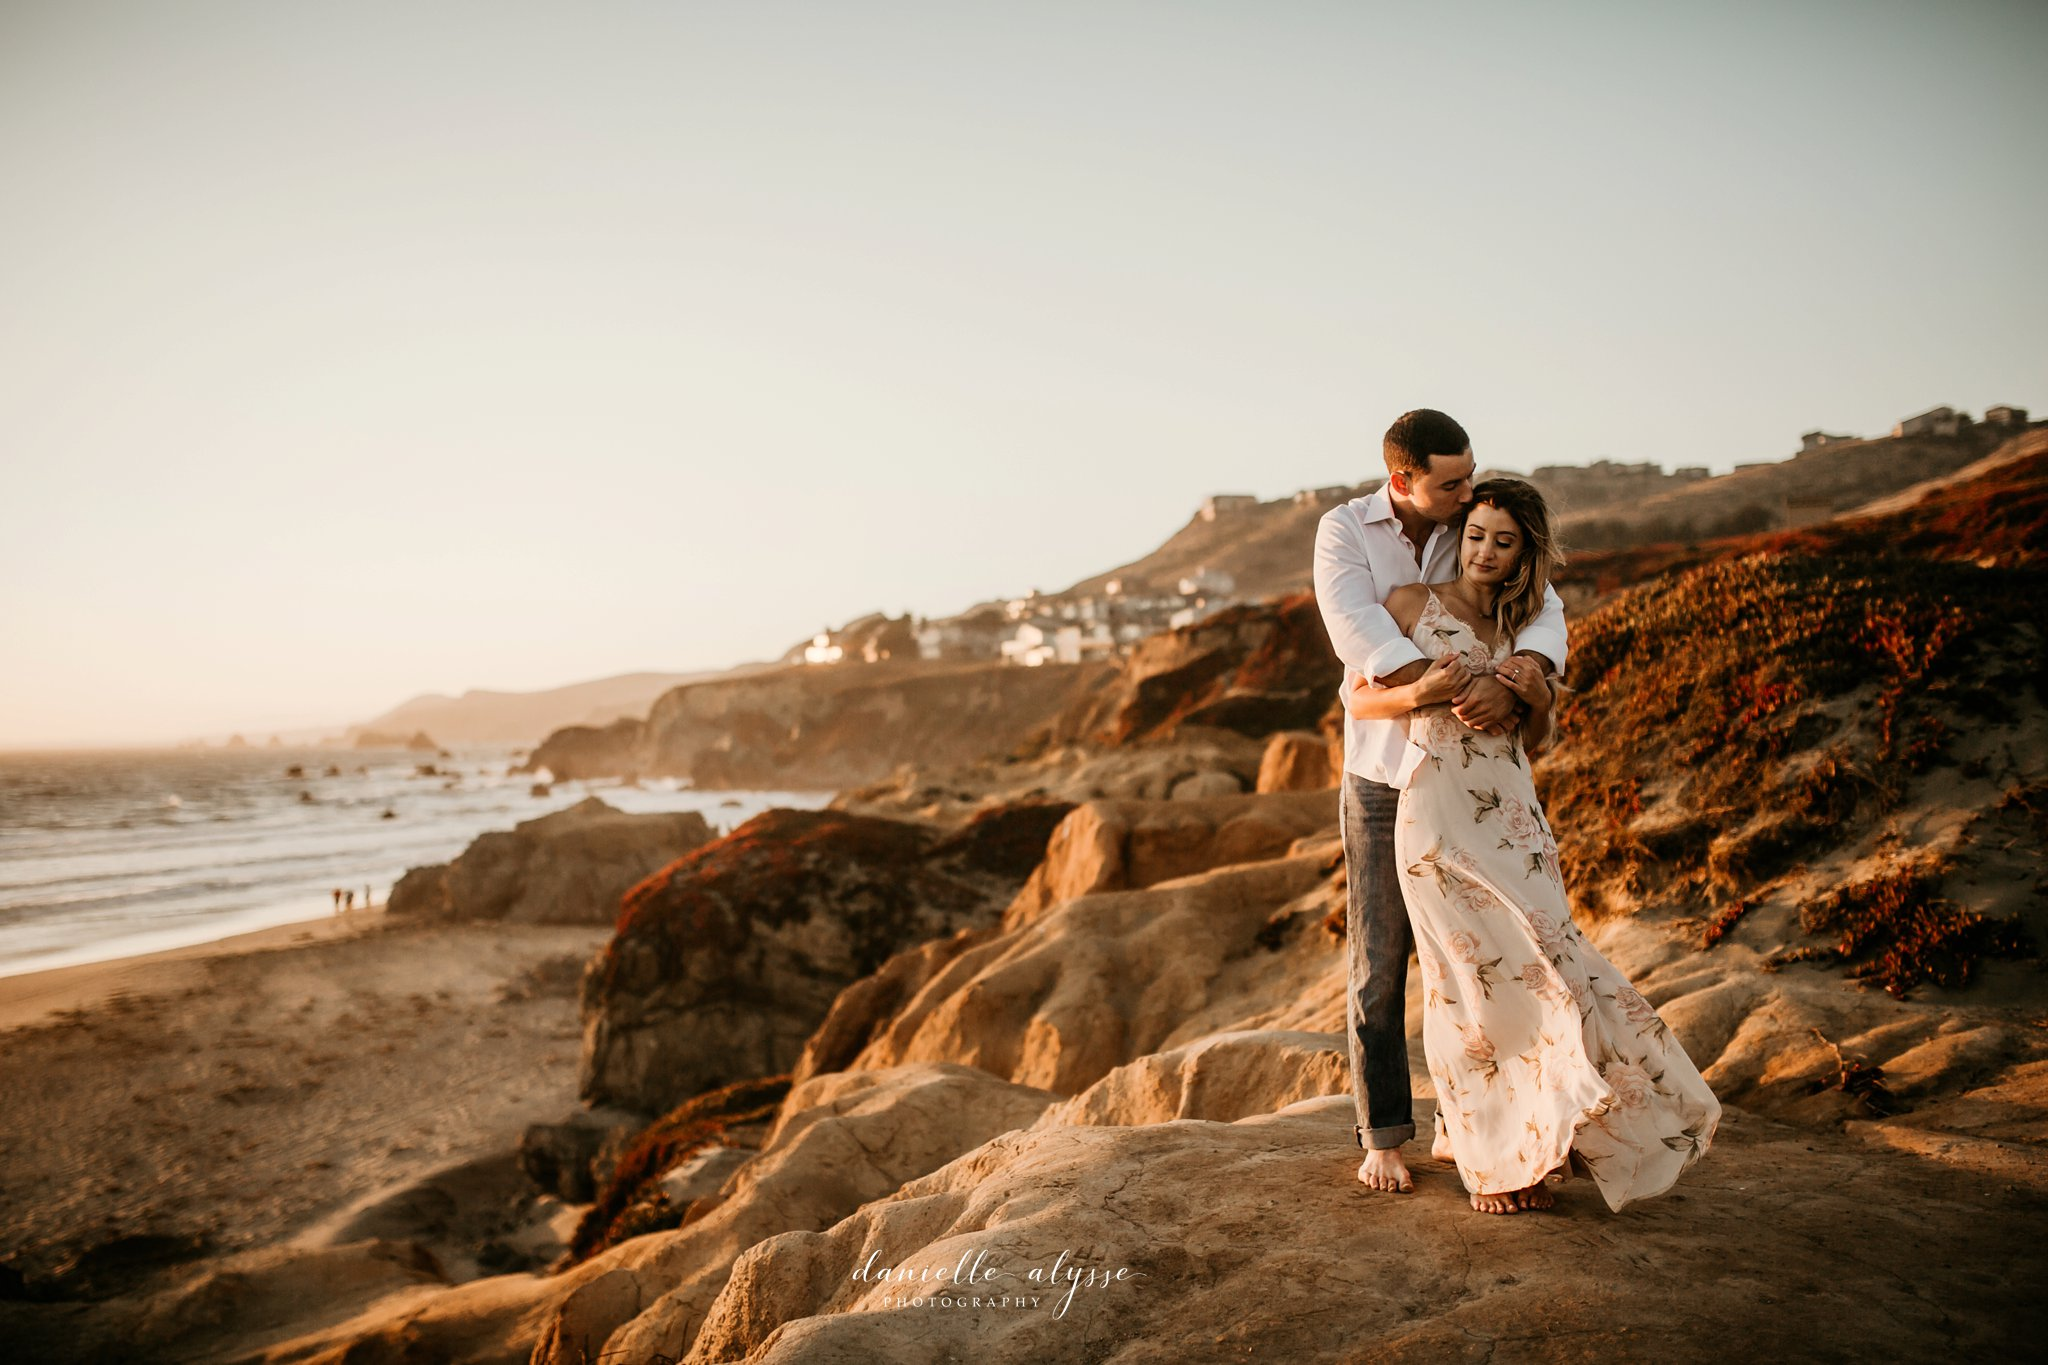 180804_engagement_katie_matt_dillon_beach_napa_danielle_alysse_photography_blog_75_WEB.jpg